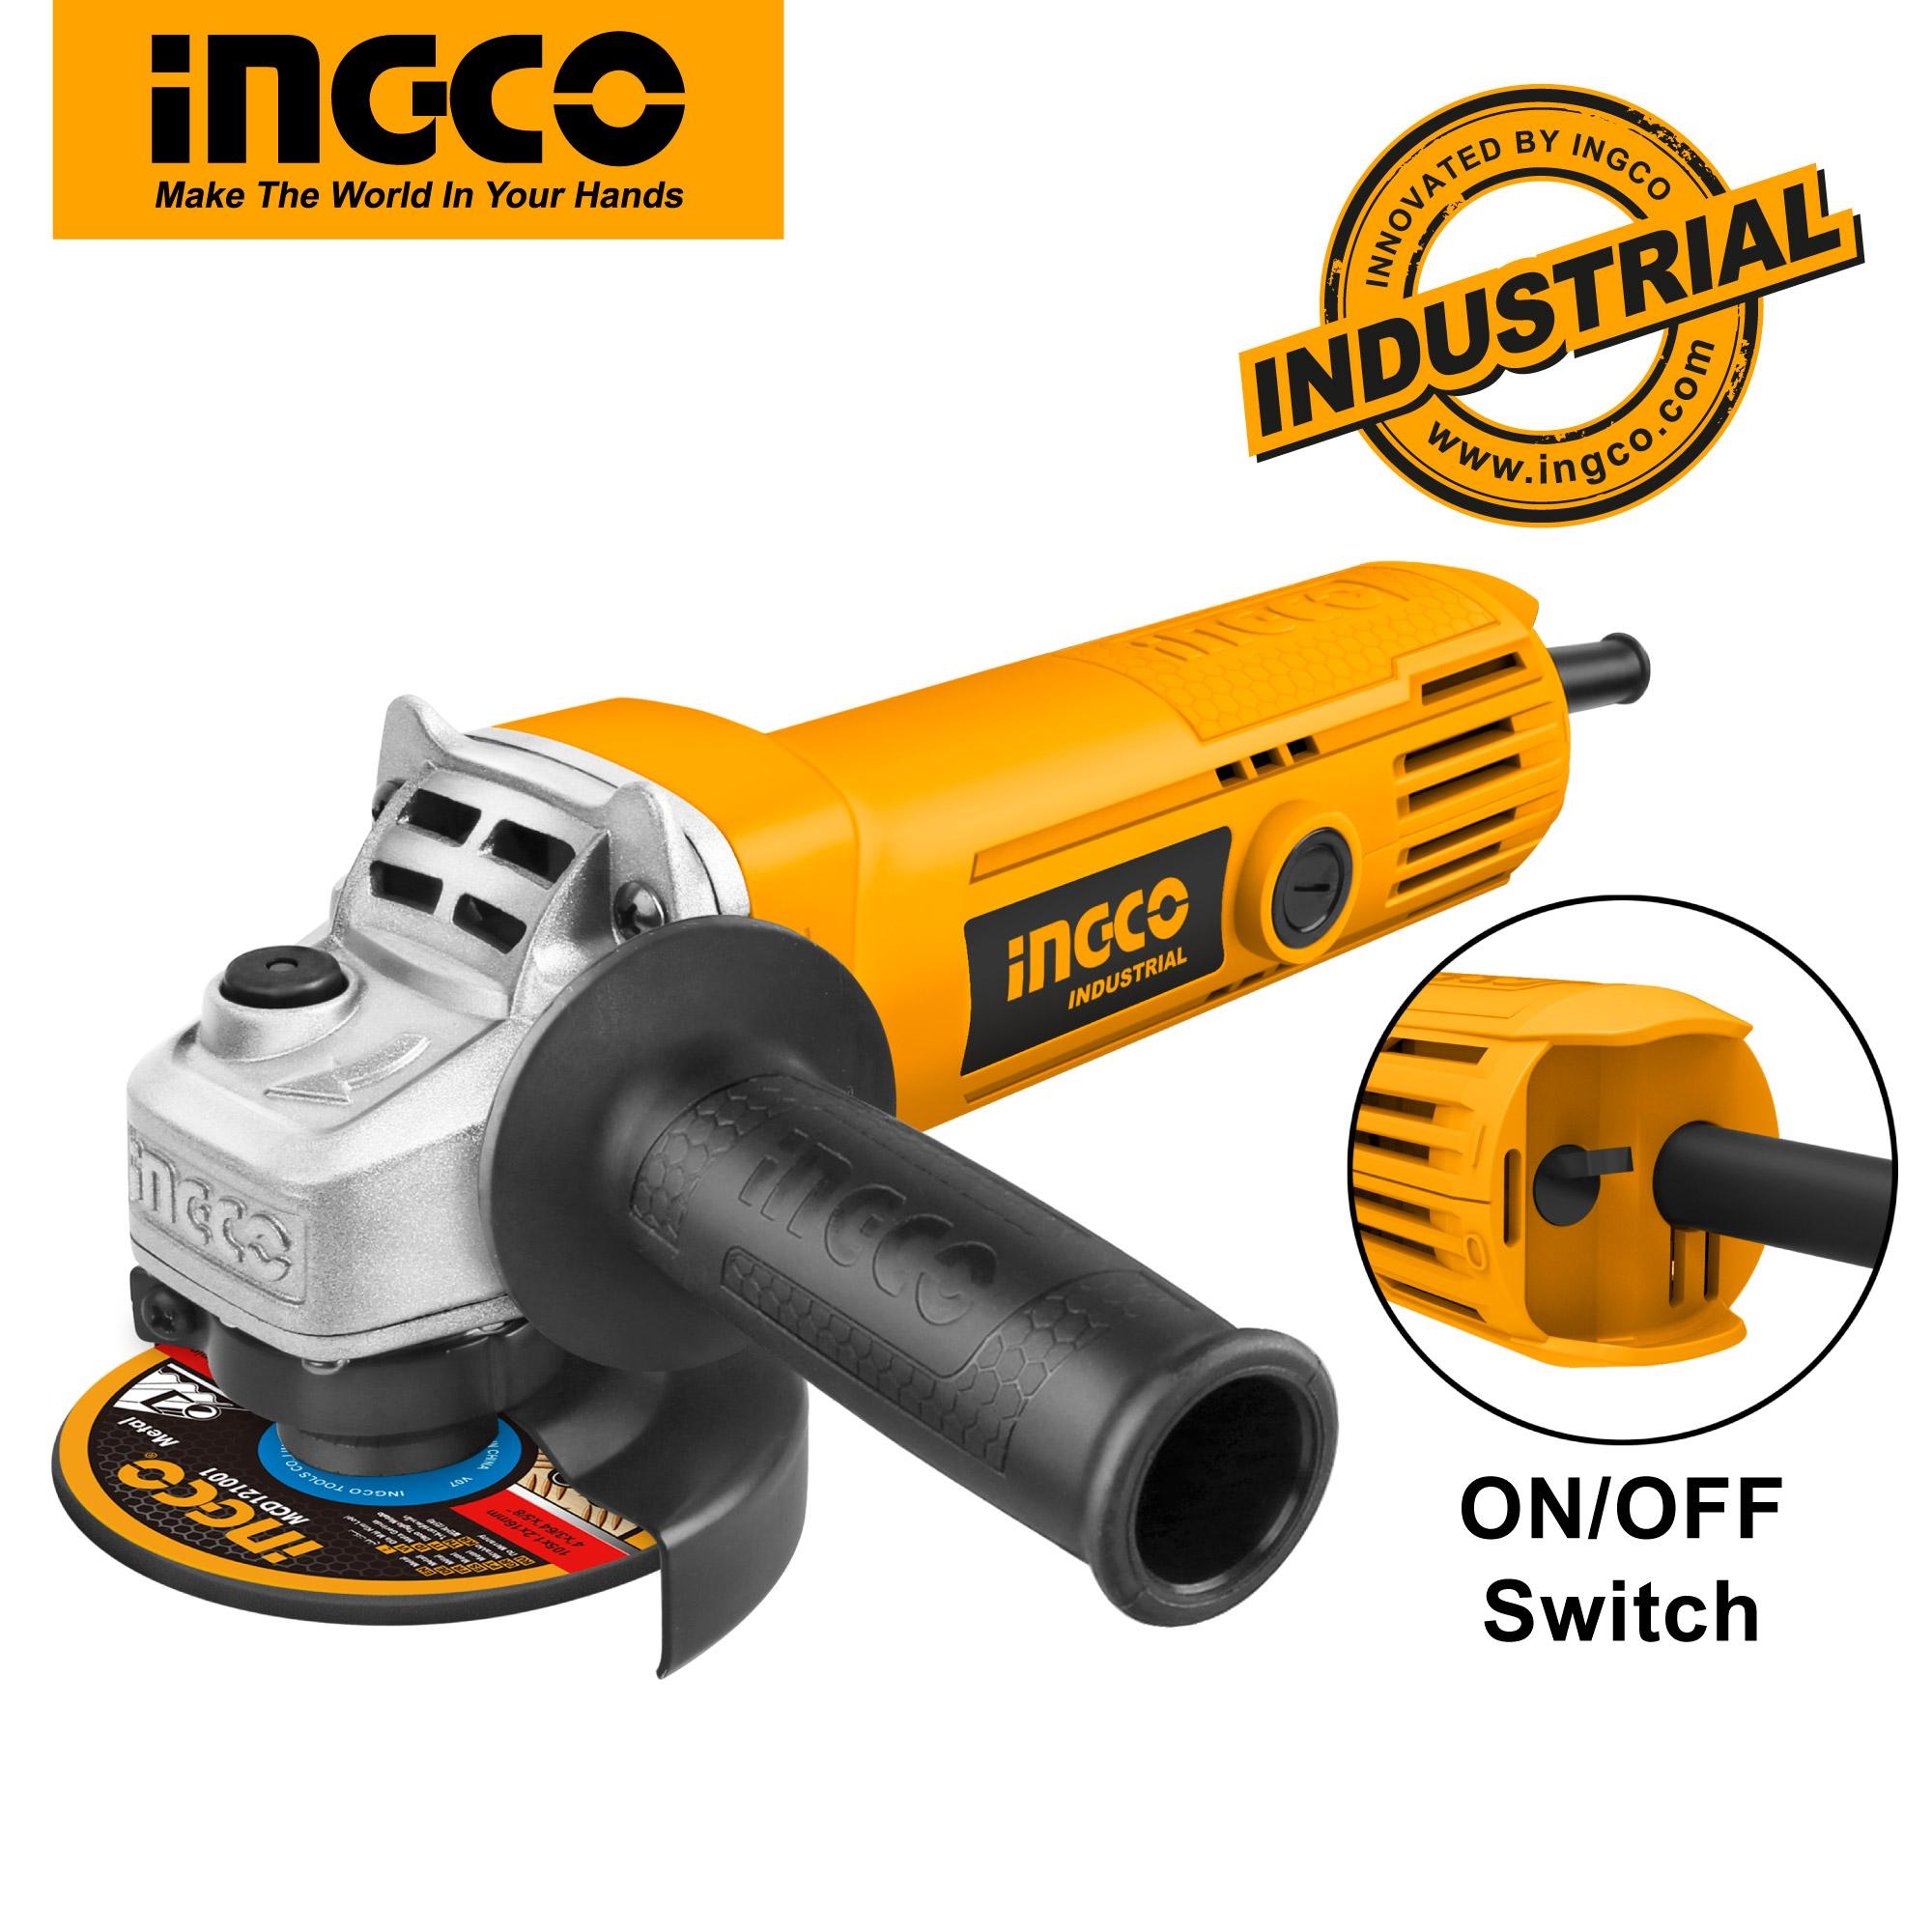 INGCO 710W Angle Grinder 11000rpm 100mm with 1pcs Auxiliary Handle AG7106-2